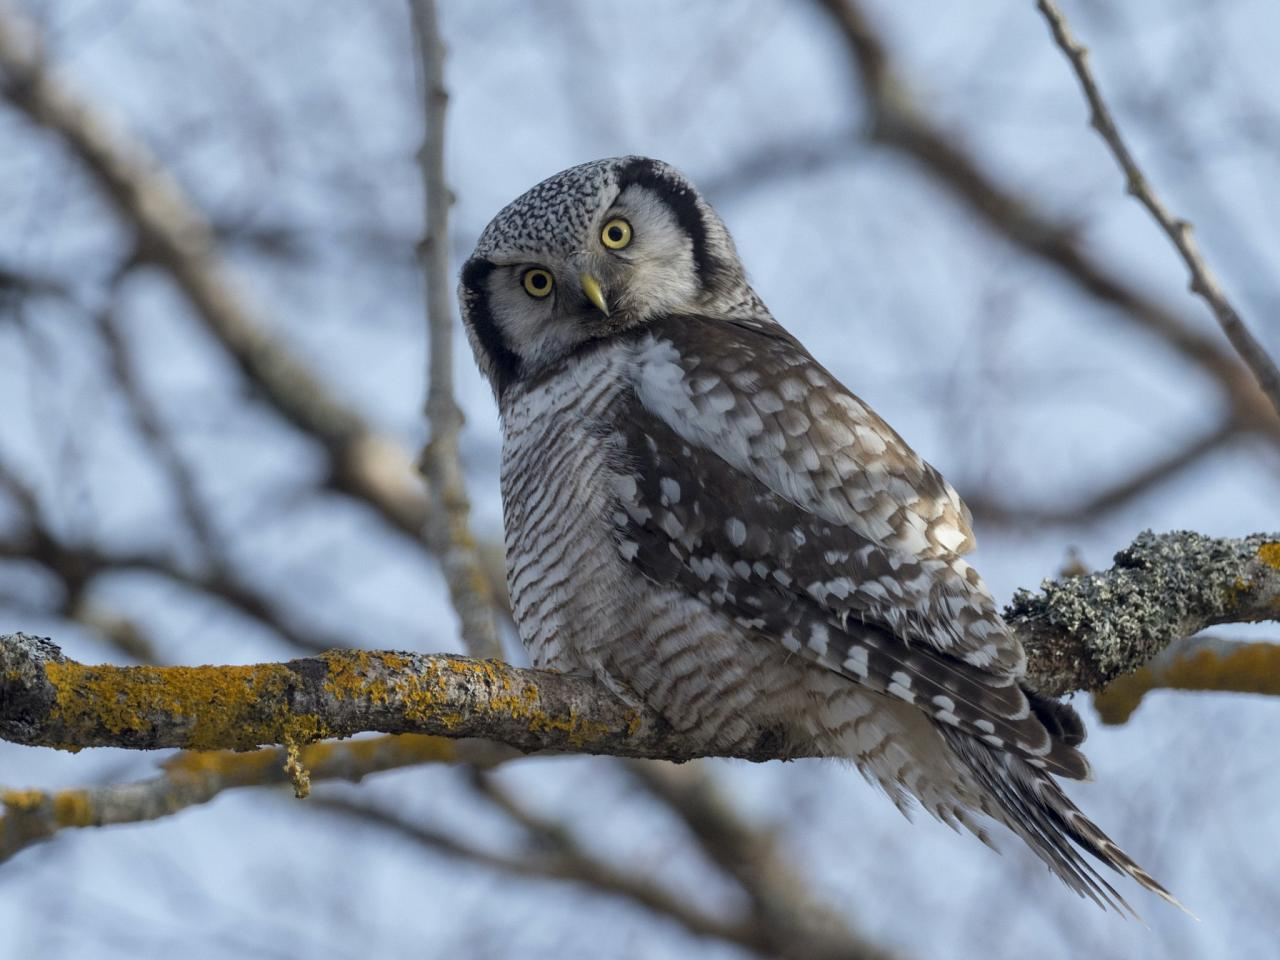 Hawk Owl, Finland Birding Tour, Finland Nature Tours, Naturalist Journeys, Europe Birding, Norway, Norway Birding Tour